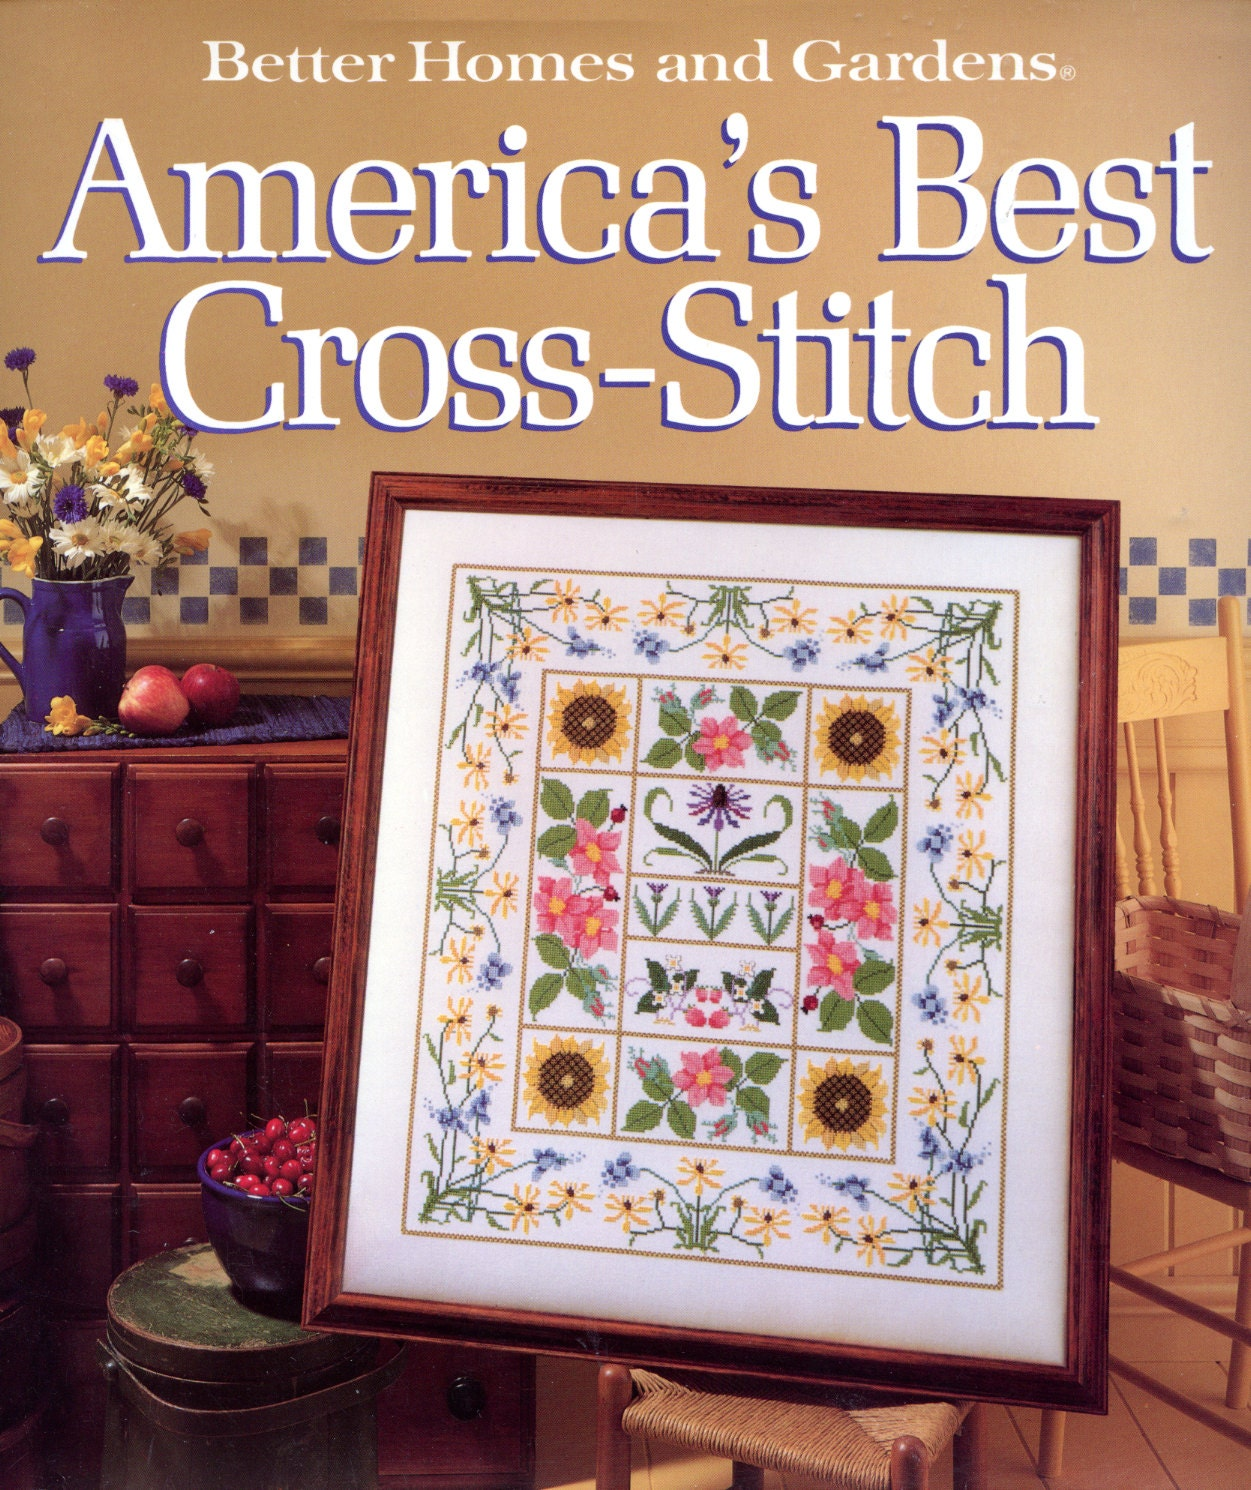 Better homes and gardens america 39 s best cross stitch for Americas best homes